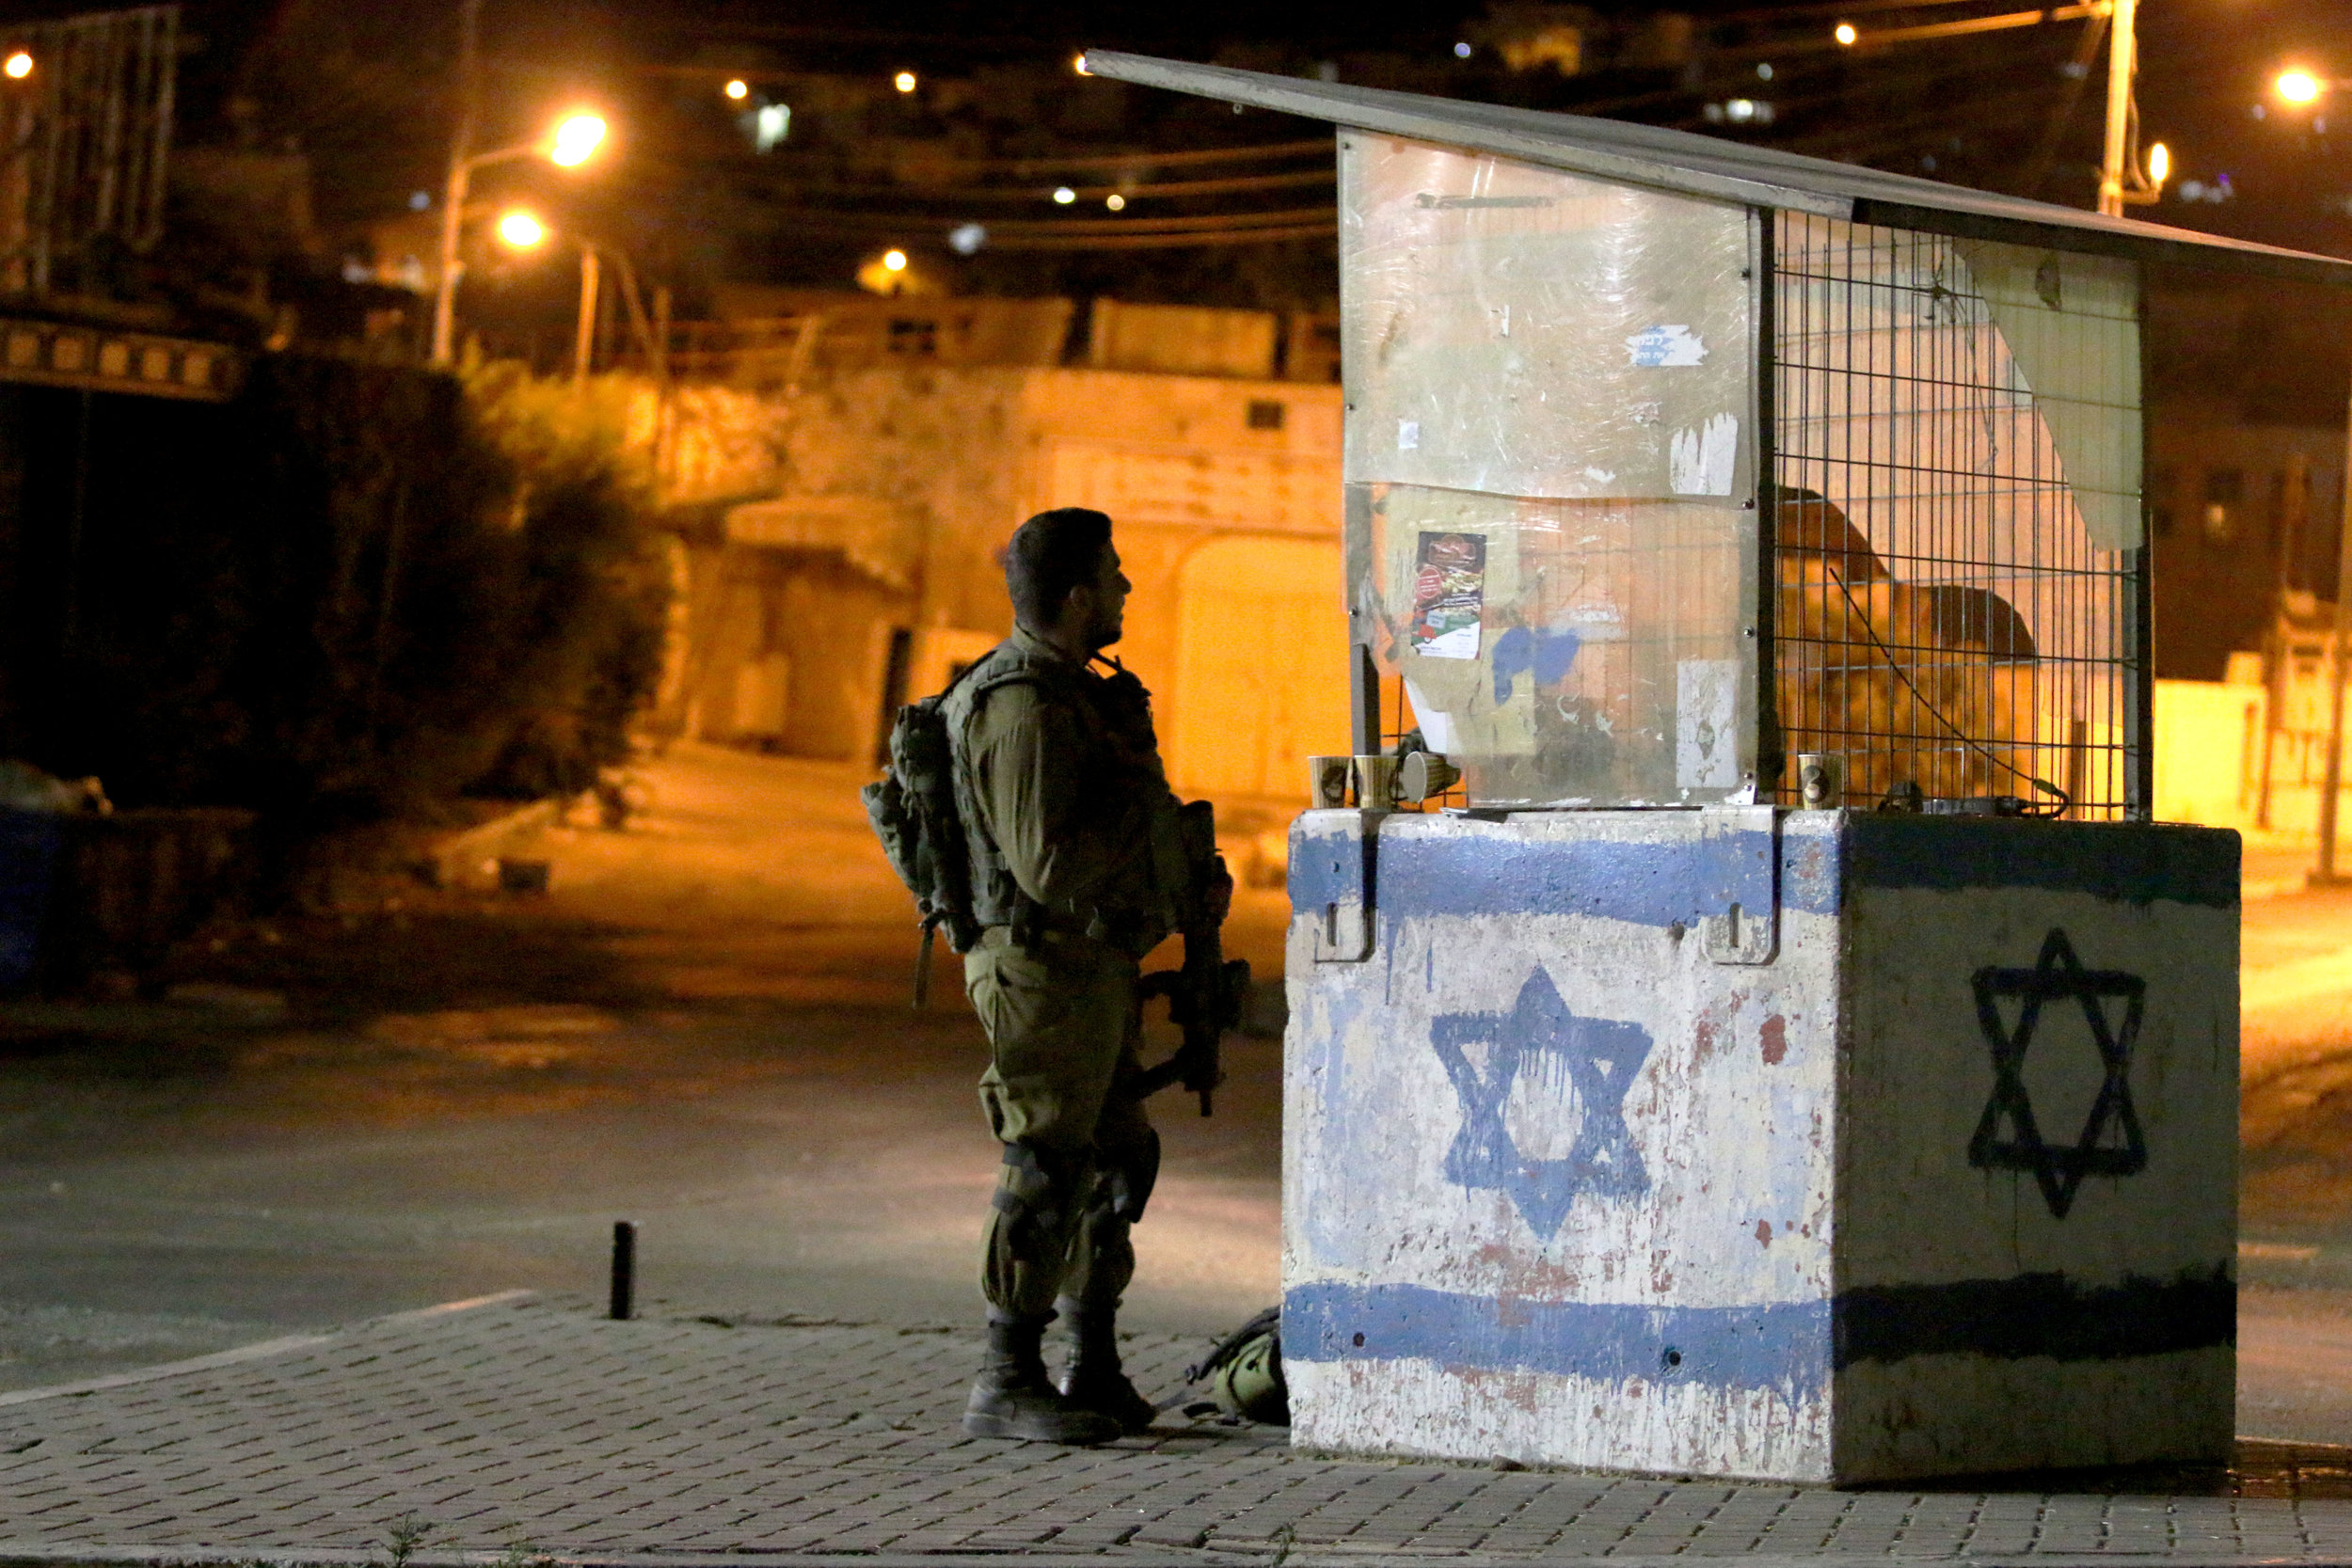 An Israeli soldier stands at his post in the West Bank city of Hebron. Photo by Micah Danney.